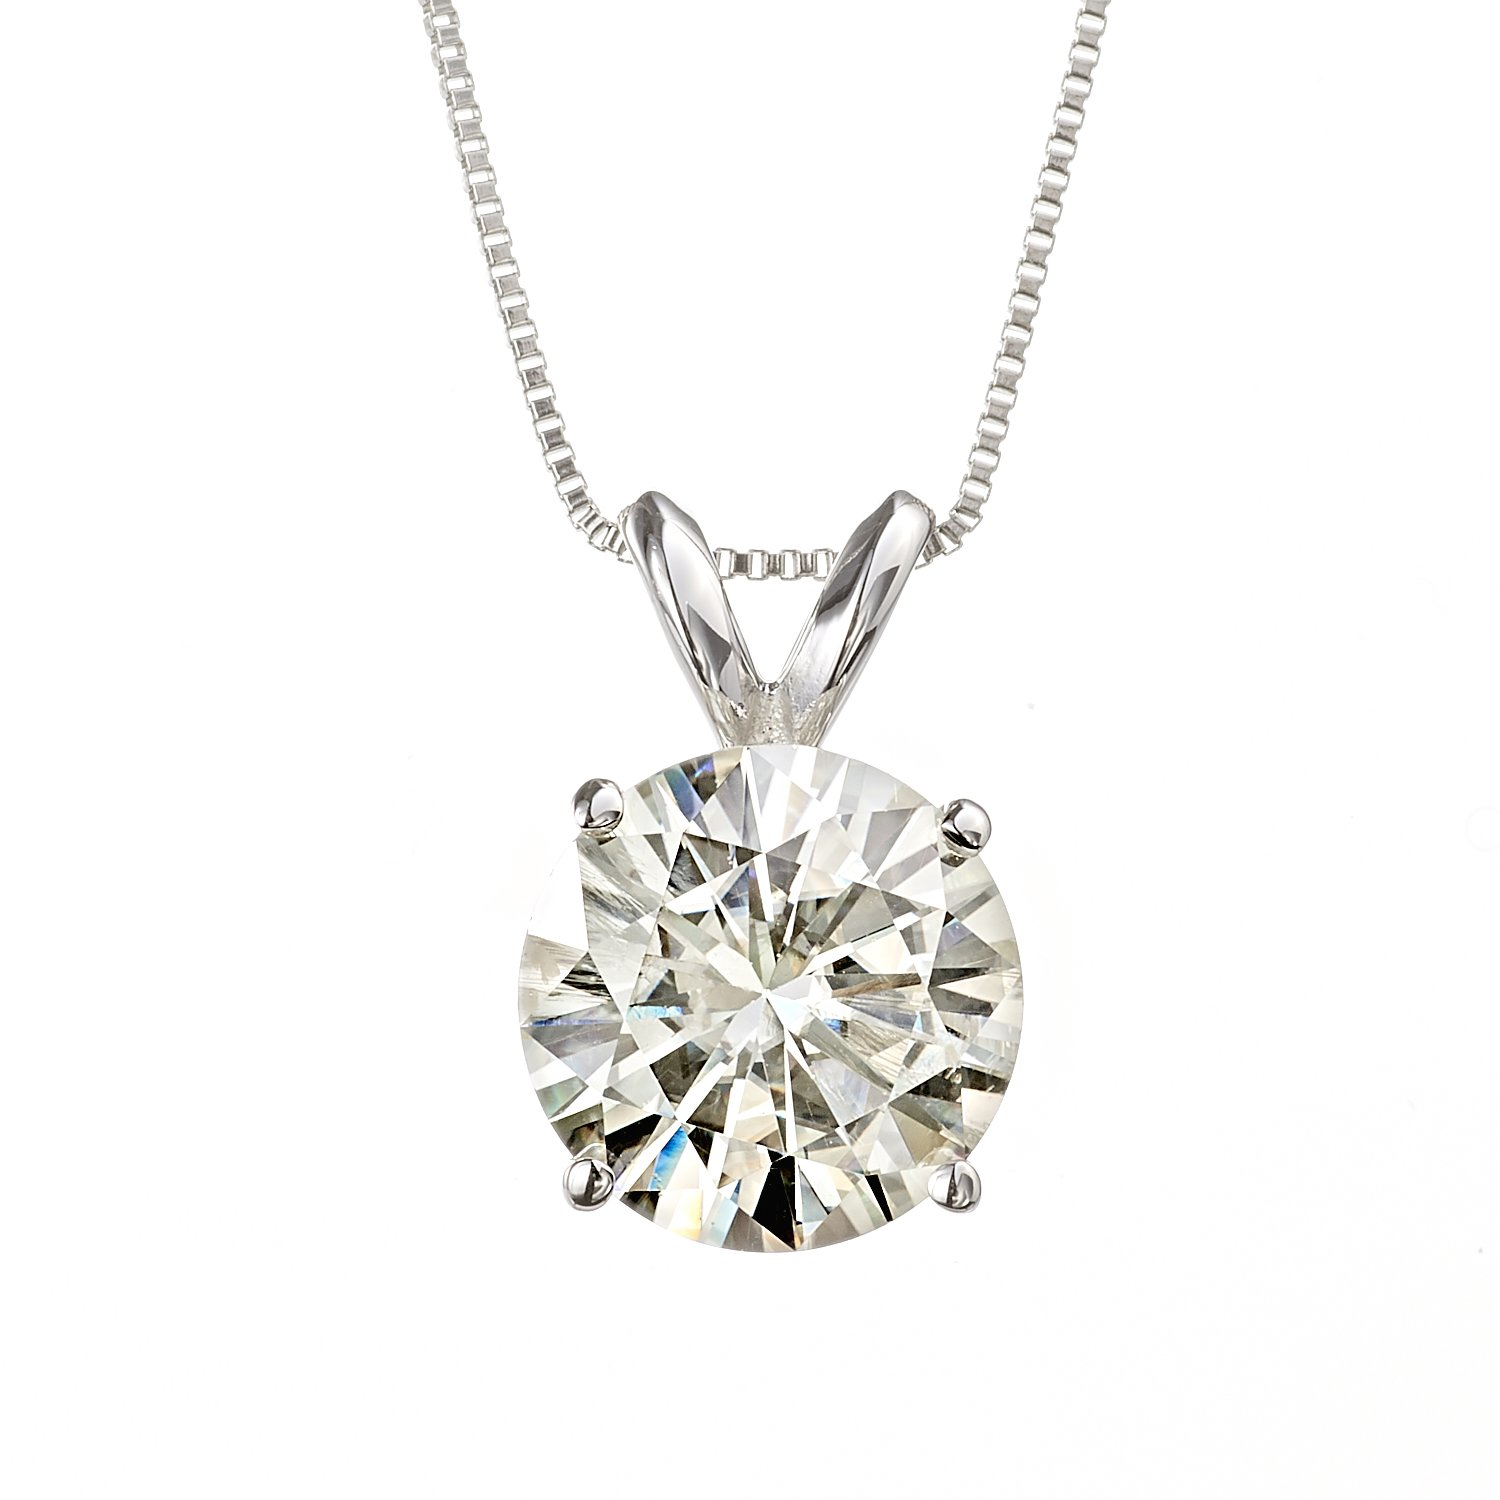 8.0mm Round Brilliant Cut Moissanite White Gold Pendant Necklace, 3.80cttw DEW By Charles & Colvard